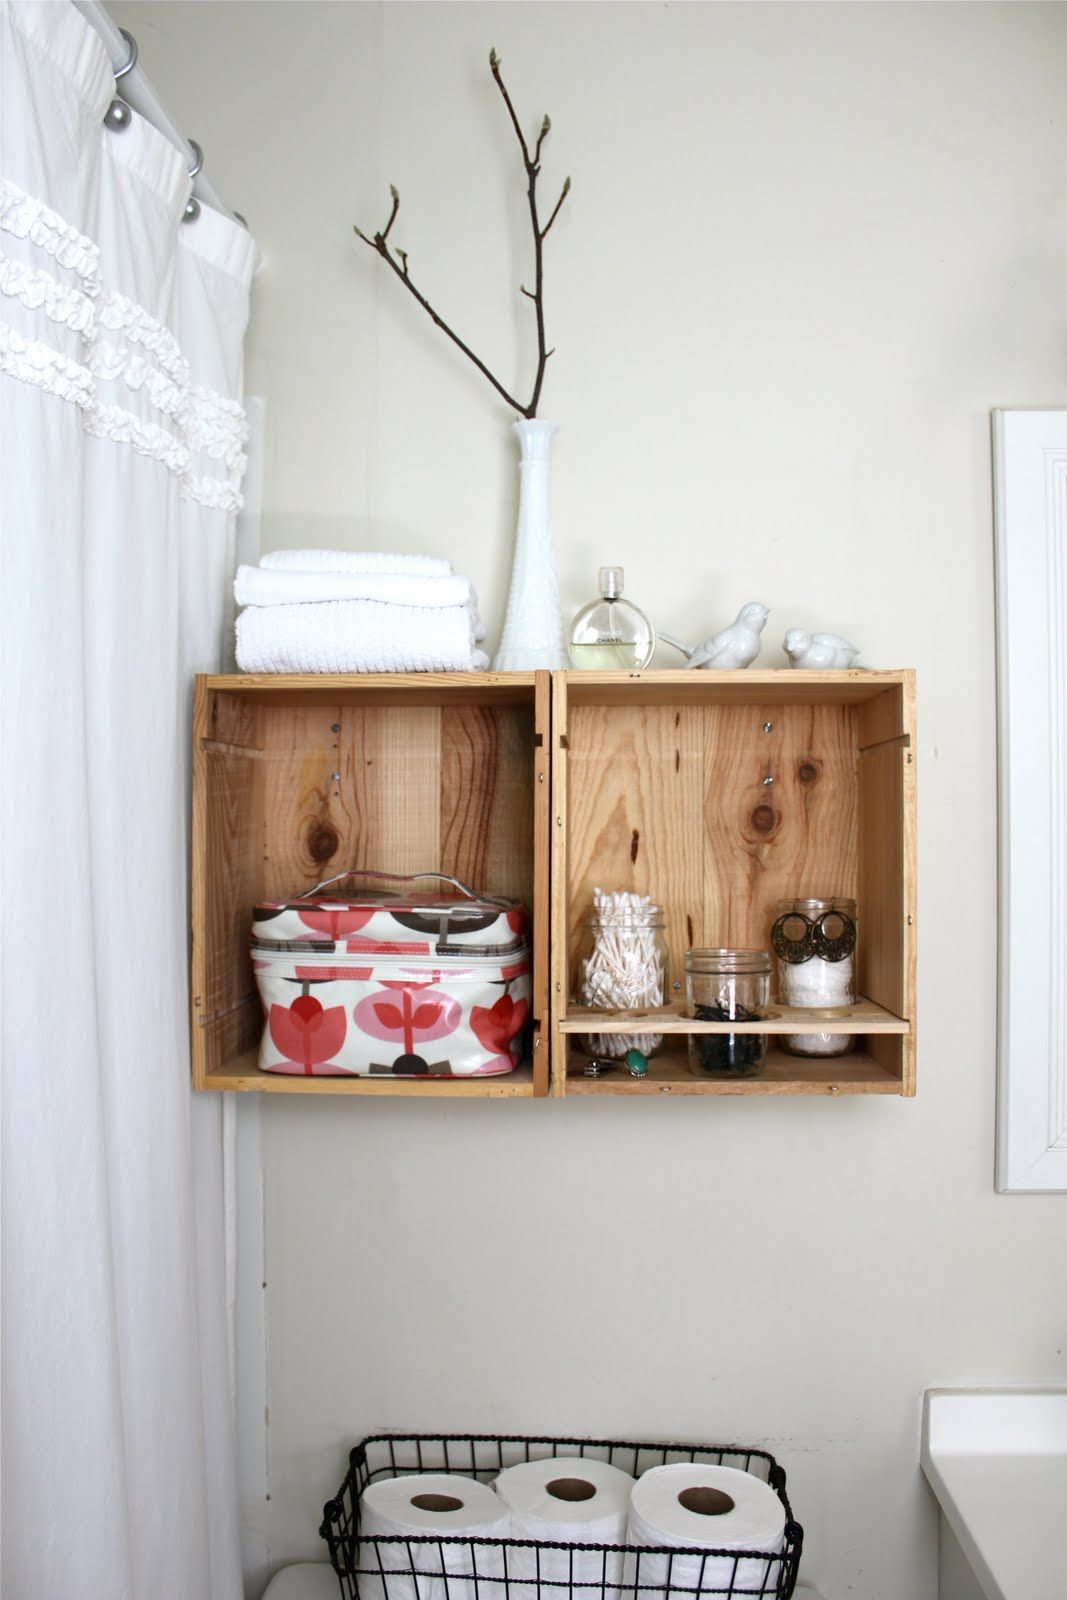 Ideas Bathroom Shelves How To Furnish Your Home With Repurposed Wine Crates